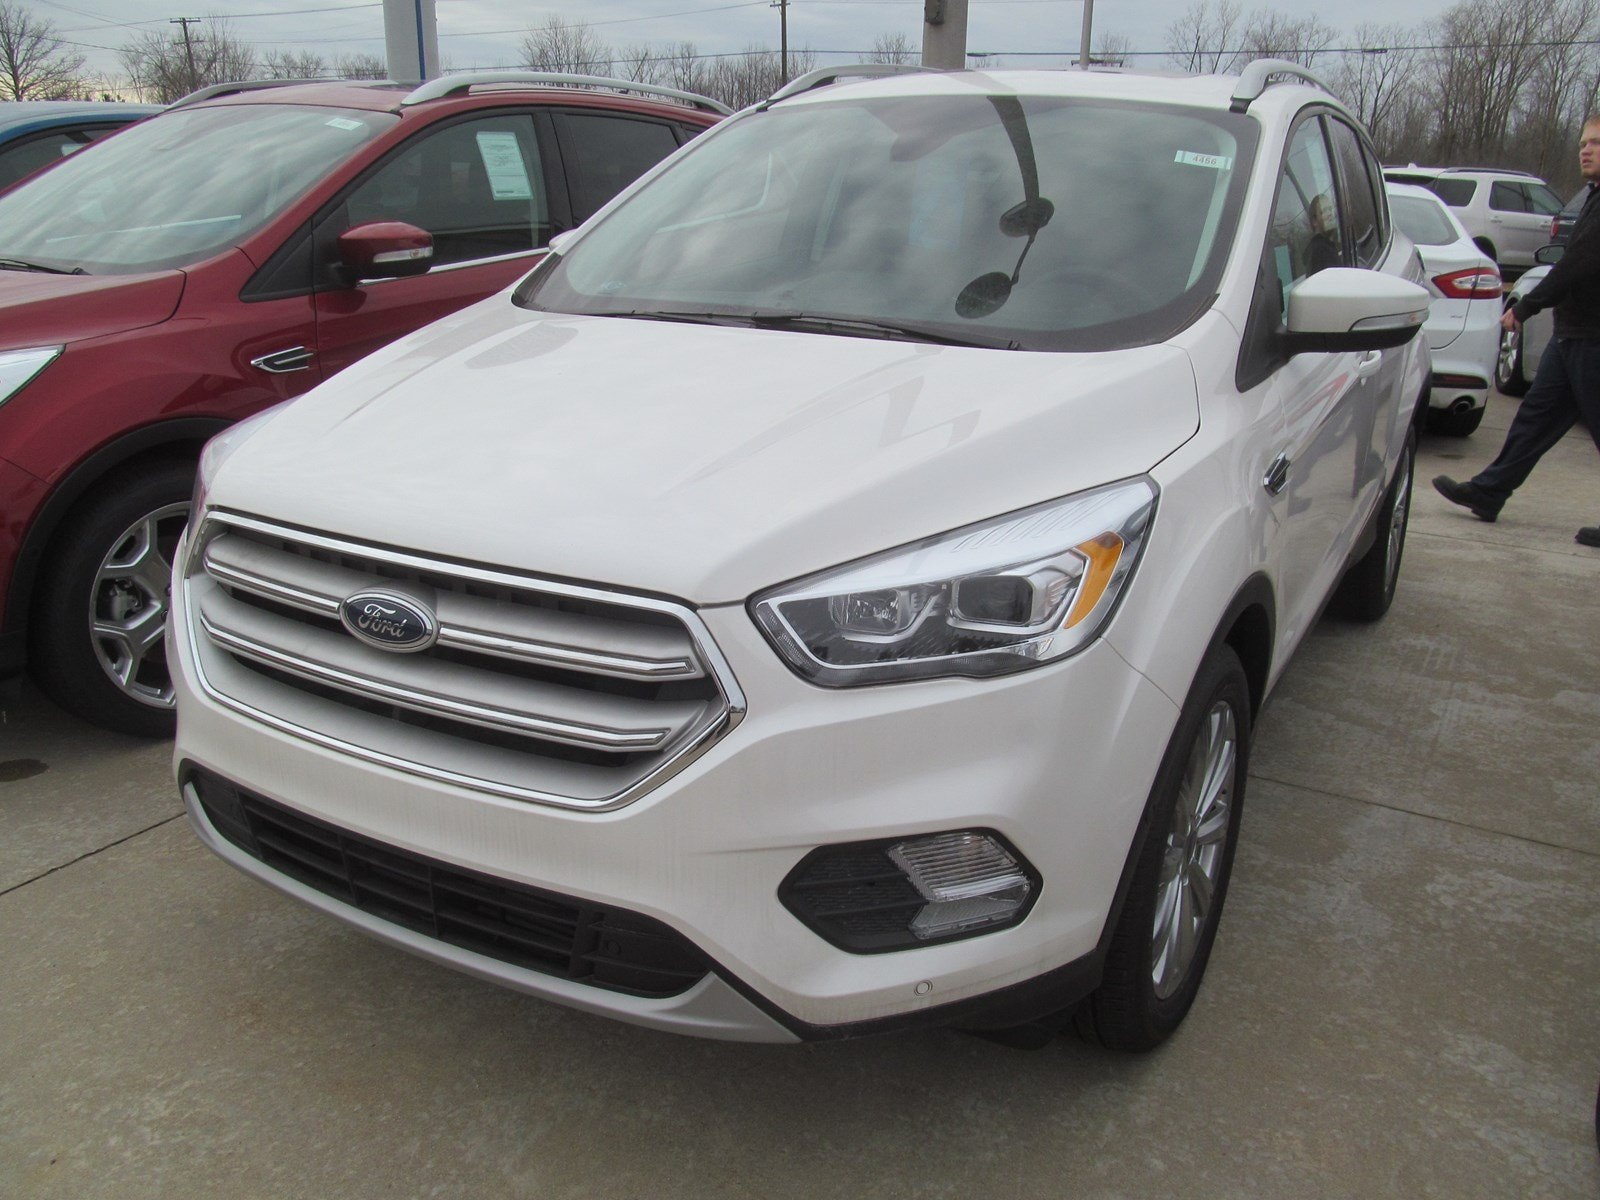 2018 Ford Escape Loaded Titanium w 4Wheel Drive & EcoBoost Titanium FWD